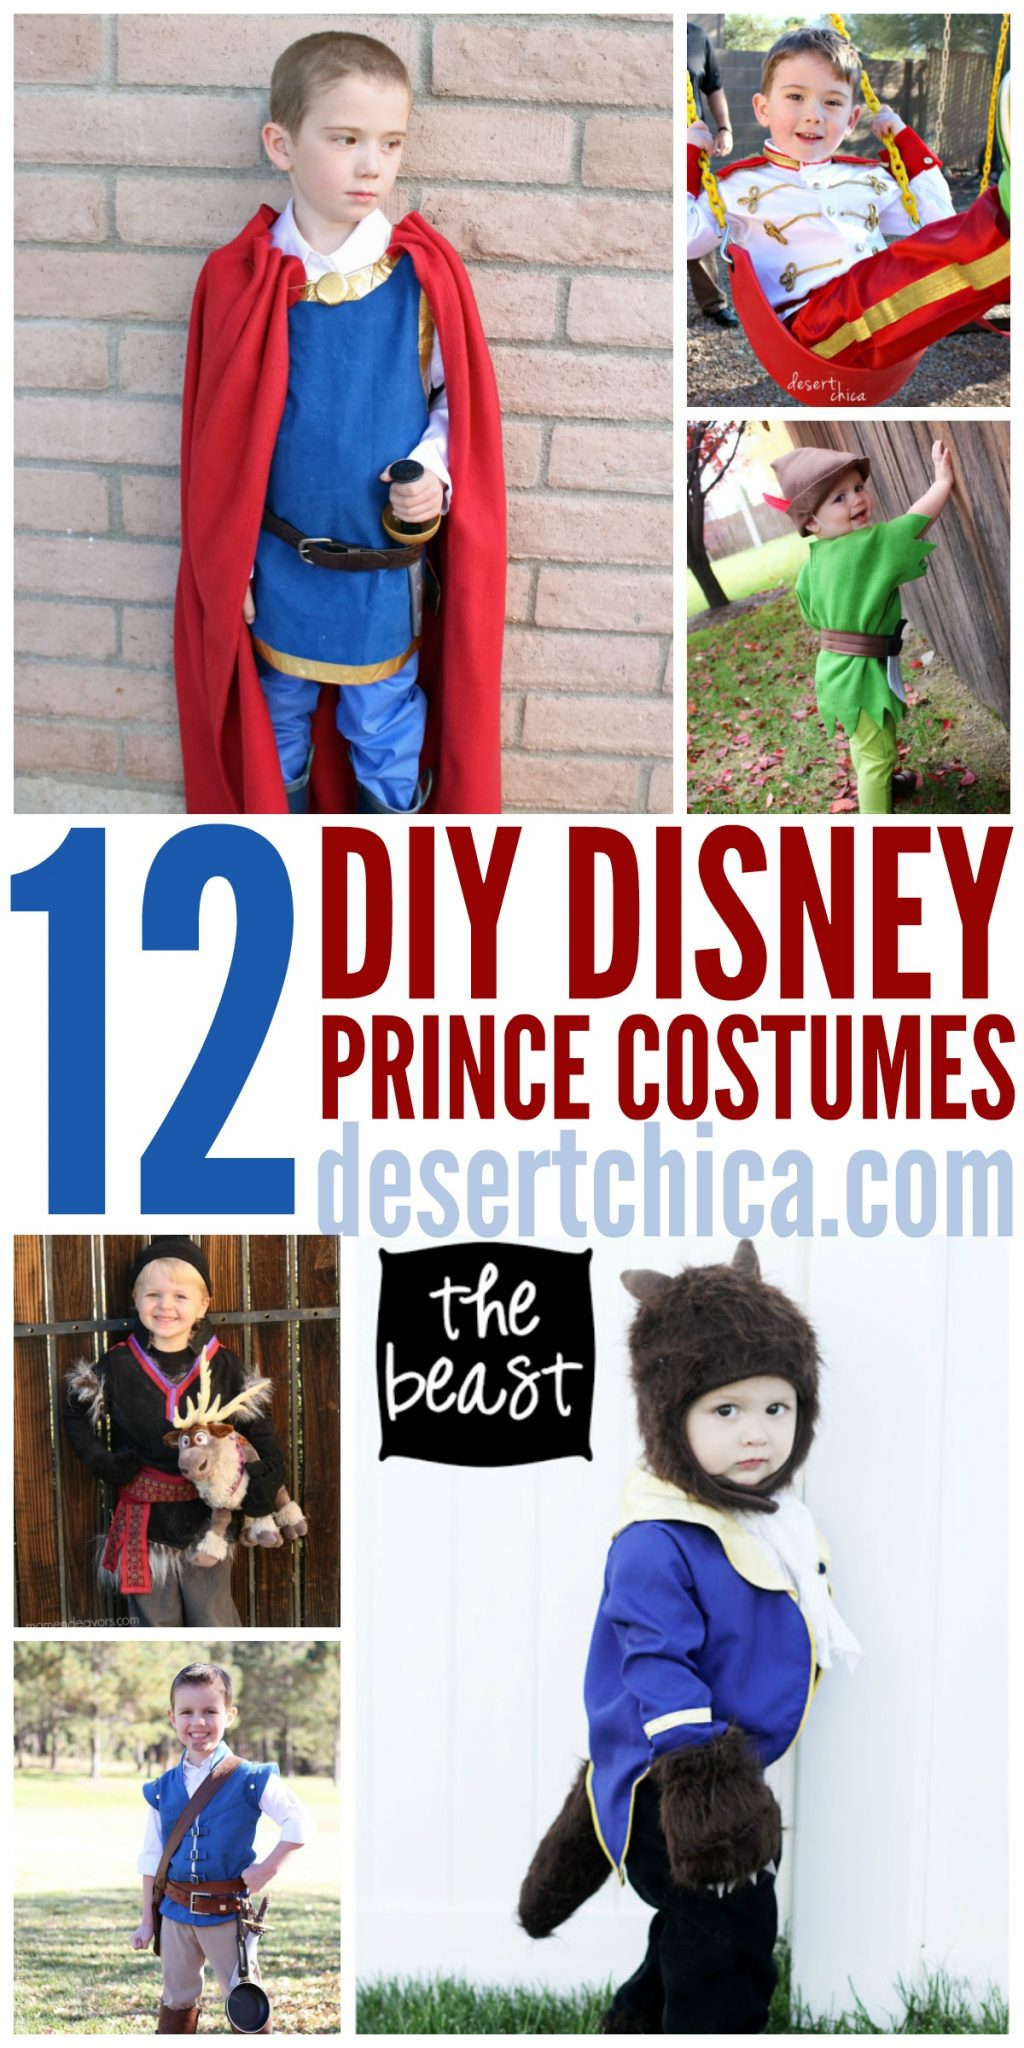 How to make DIY Disney Prince Costumes for Halloween or Disney World trips!